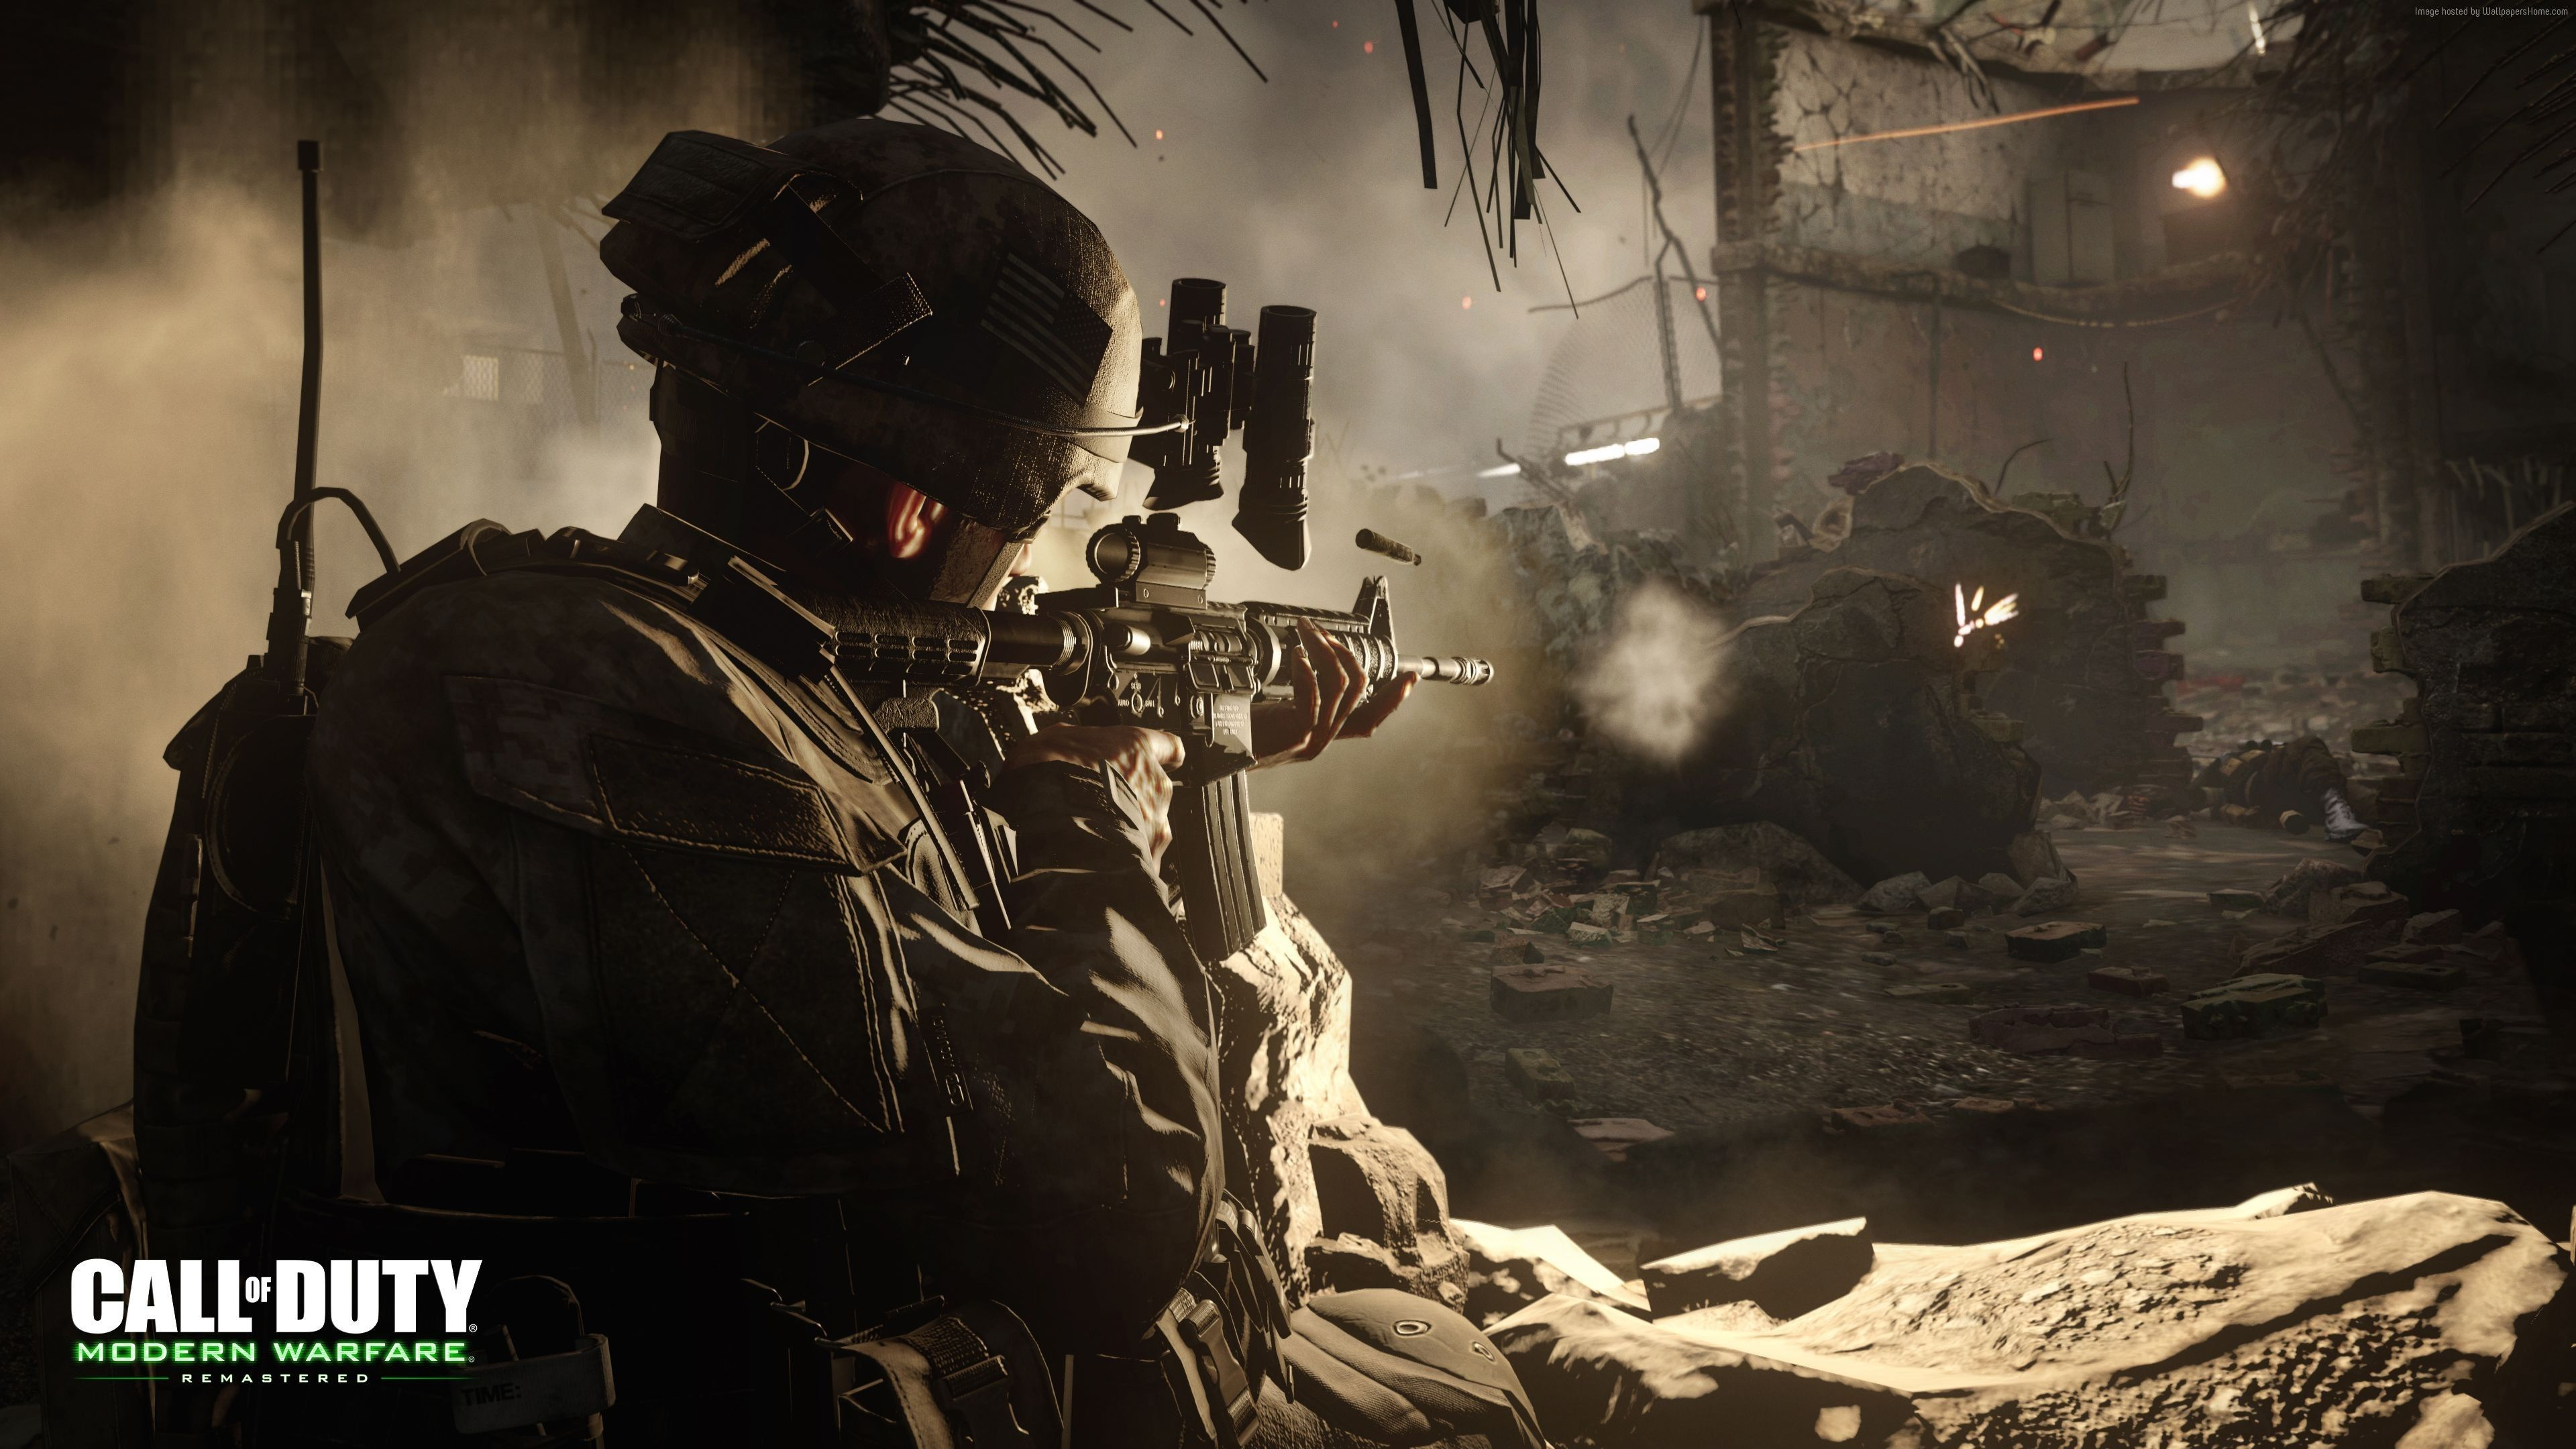 Cod Wallpapers For Desktop Modern Warfare Call Of Duty Call Of